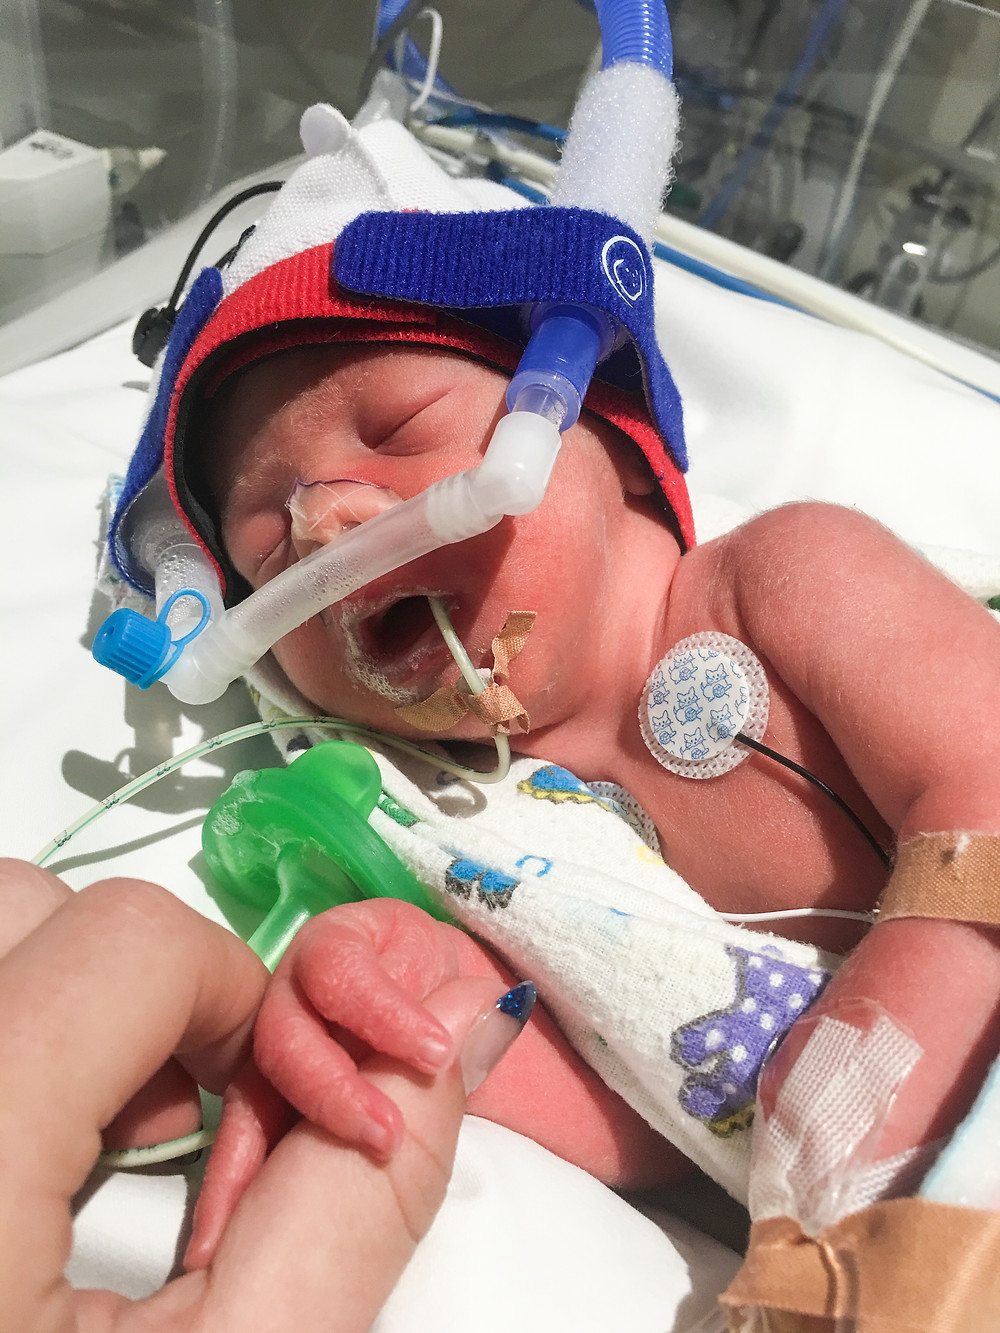 Baby-born-at-32-weeks-and is-now-stable-in-NICU-with-CPAP-breathing-support-and-feeding-tube